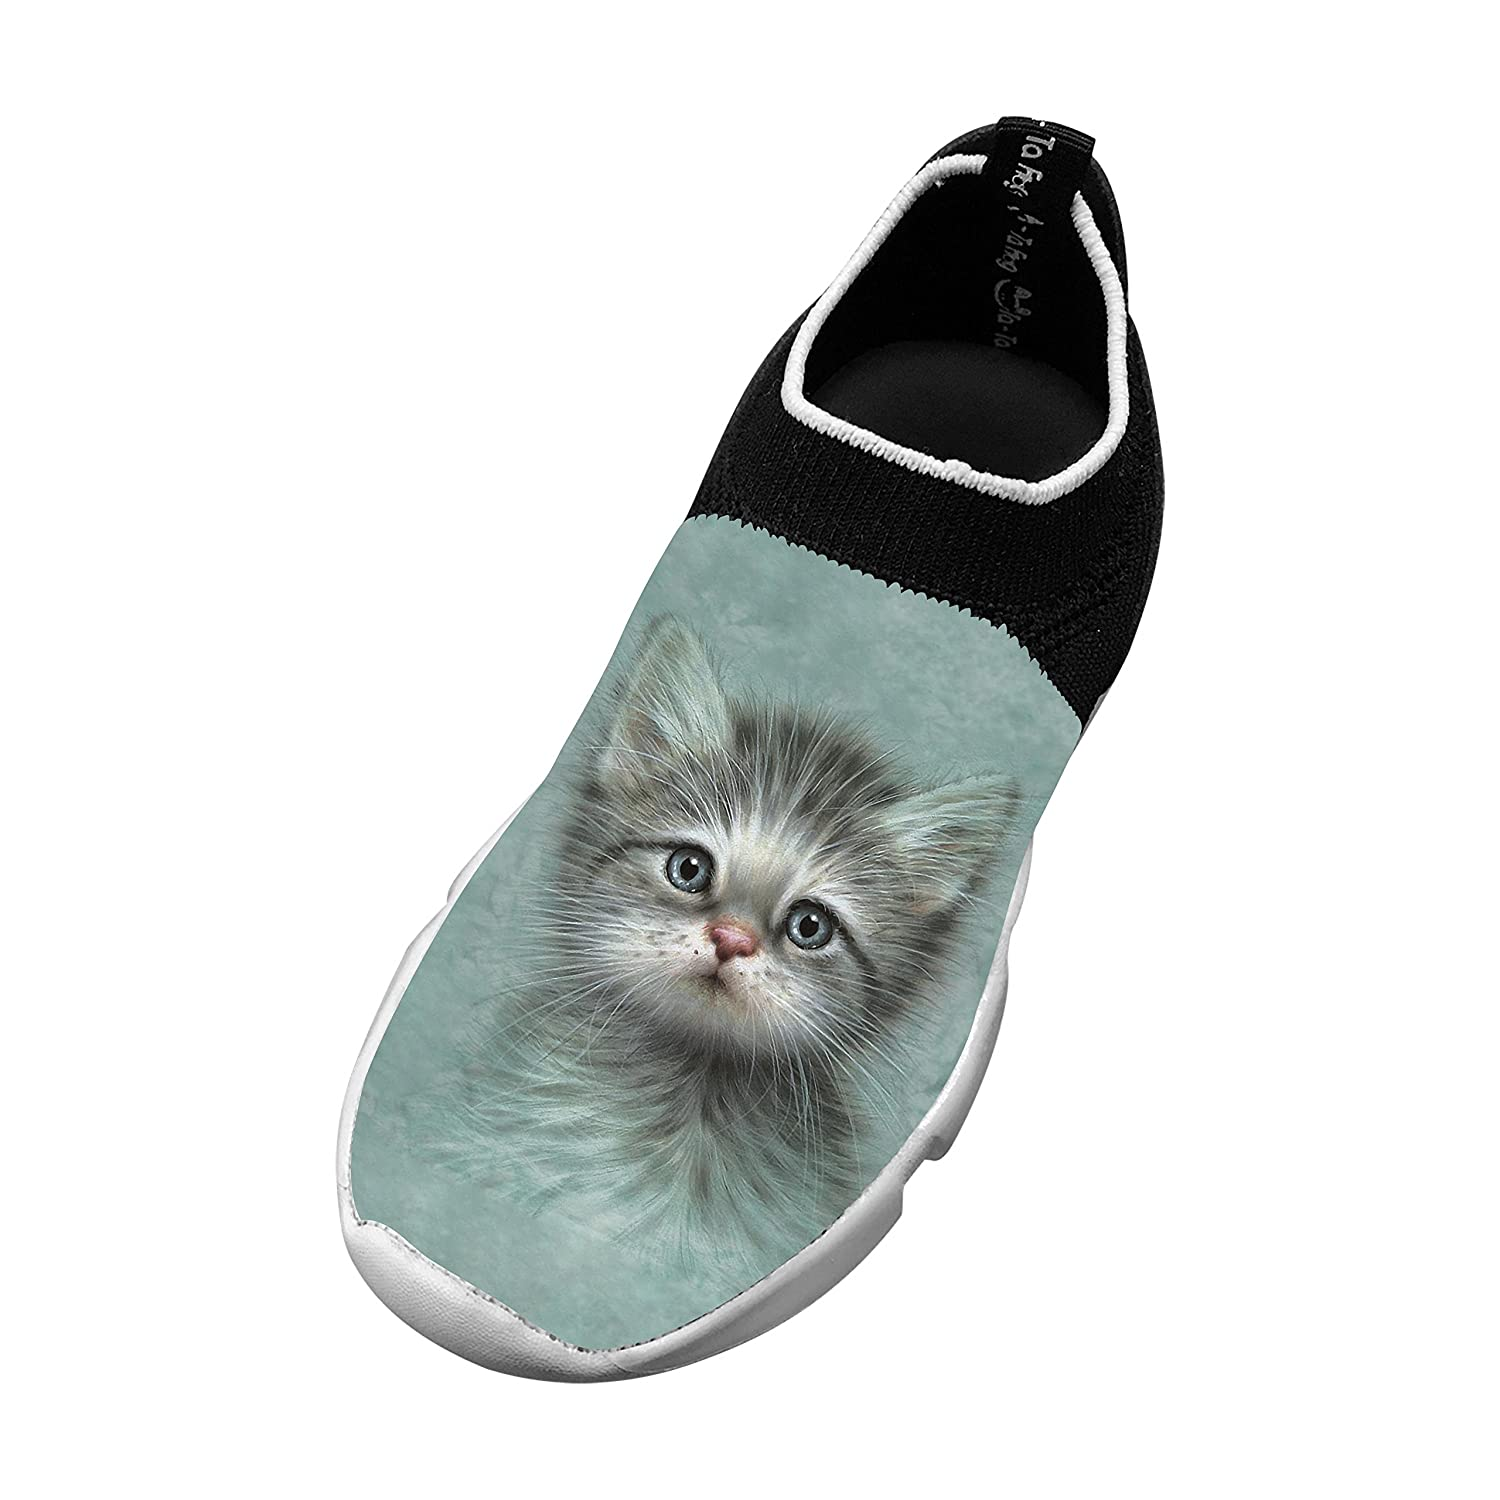 New Cool Flywire Weaving Gym shoes 3D Customized With Blue Eyed Kitten For Unisex Kids